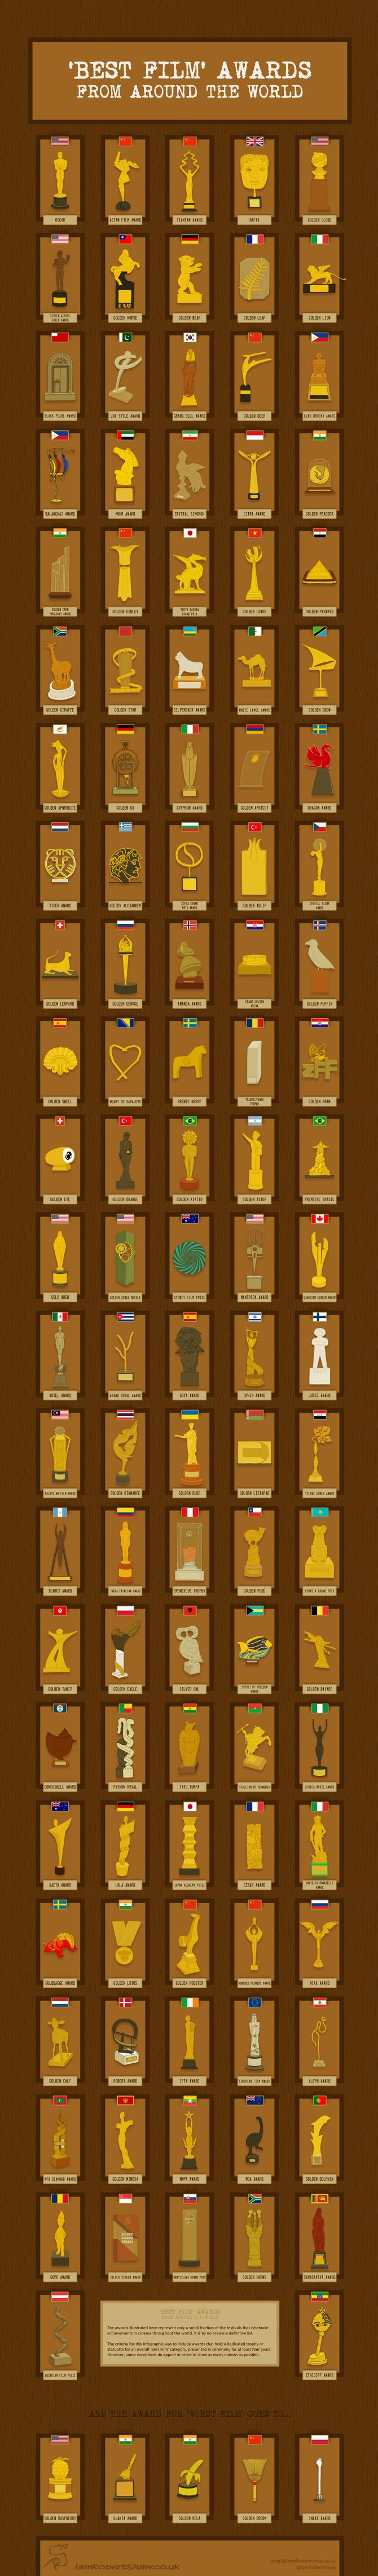 'Best Film' Awards From Around the World info graphic - Do you fancy an infographic? There are a lot of them online, but if you want your own please visit http://www.linfografico.com/prezzi/ Online girano molte infografiche, se ne vuoi realizzare una tutta tua visita http://www.linfografico.com/prezzi/